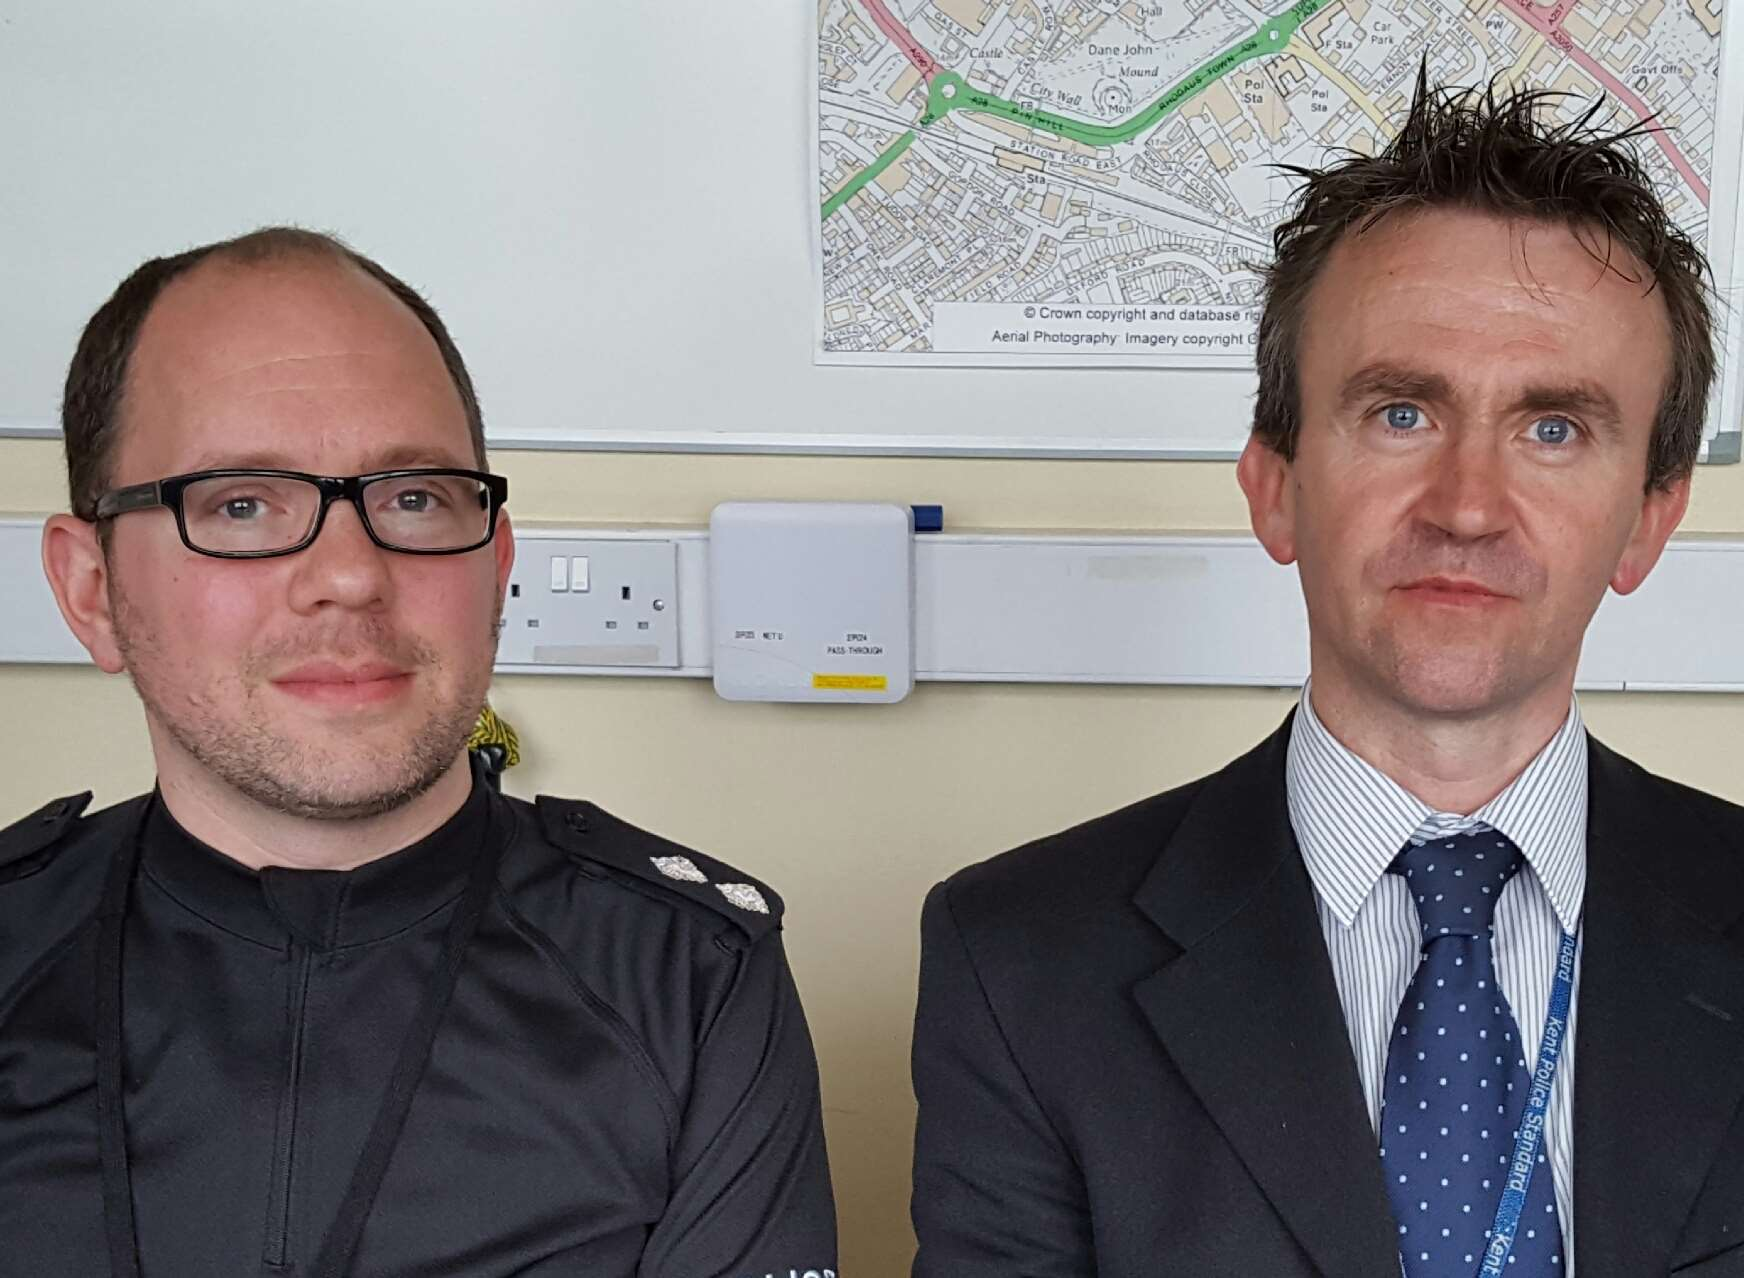 DI Andy Bidmead (left) and DS Richard Lown led the Richard Fearnside missing person investigation